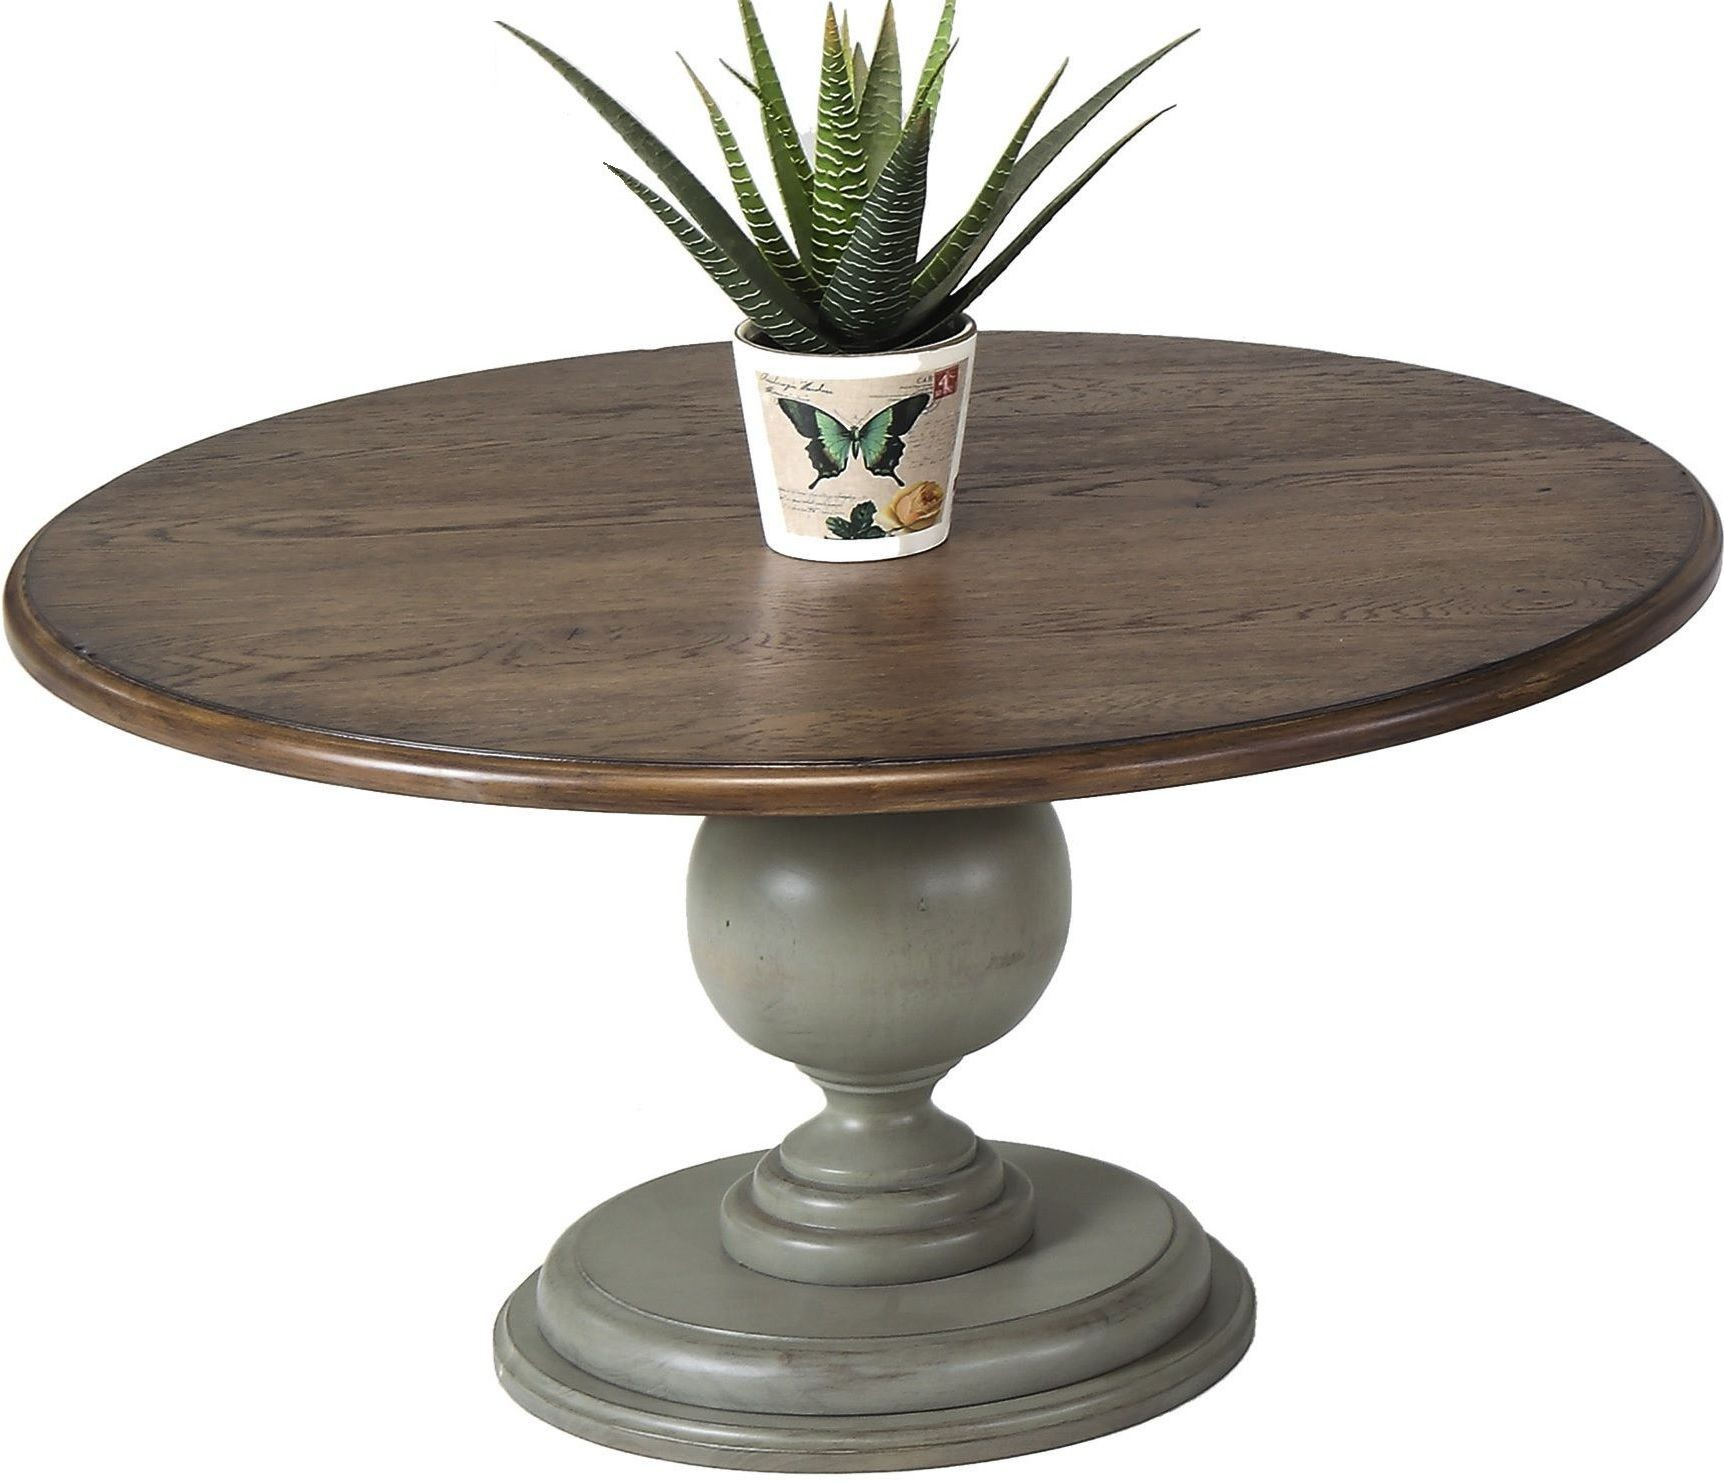 Colonnades weathered grey and oak round cocktail table for Round weathered coffee table